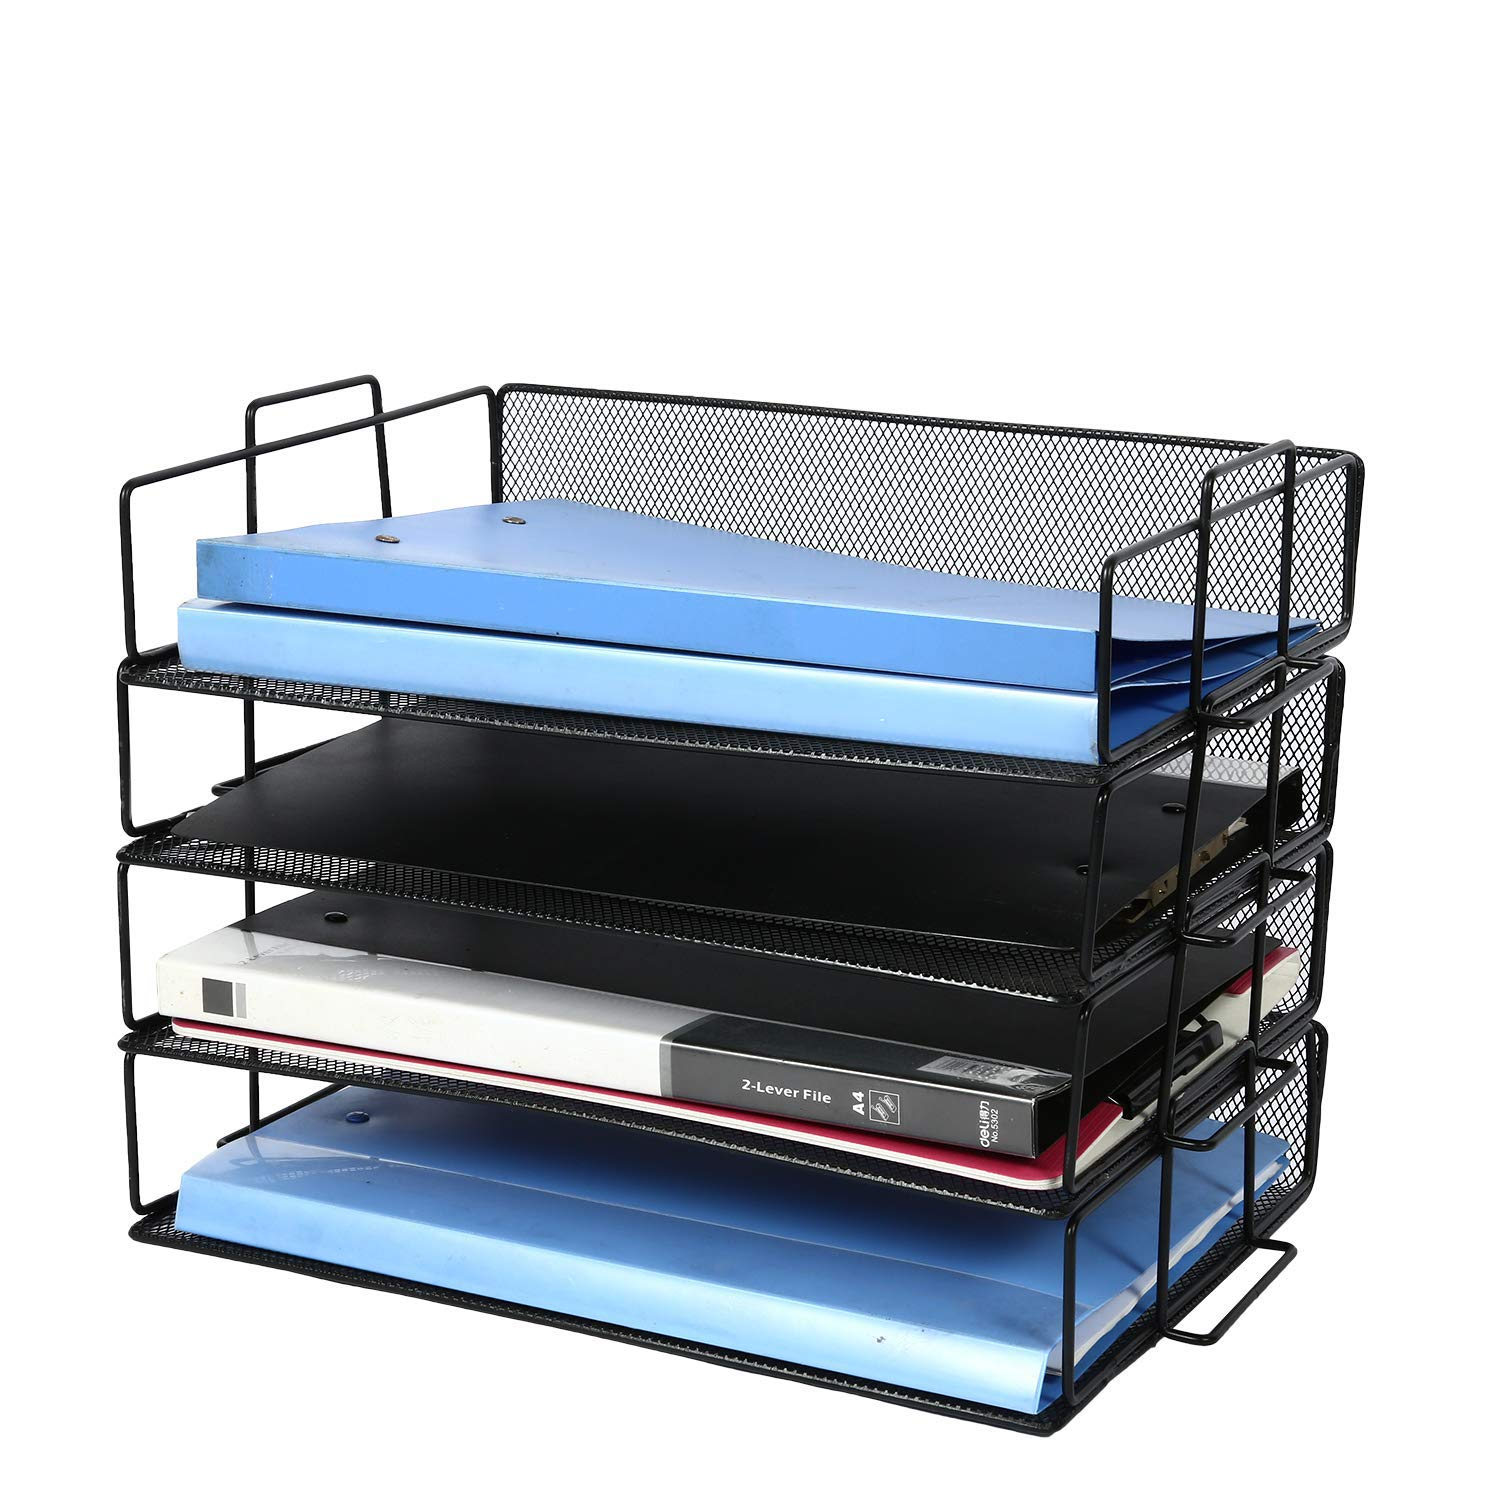 4-Tier Stackable Paper Tray Desk Organizer and Metal Mesh Office File Organizer for Folders Binders Business Home and School, Black by AI VINNY